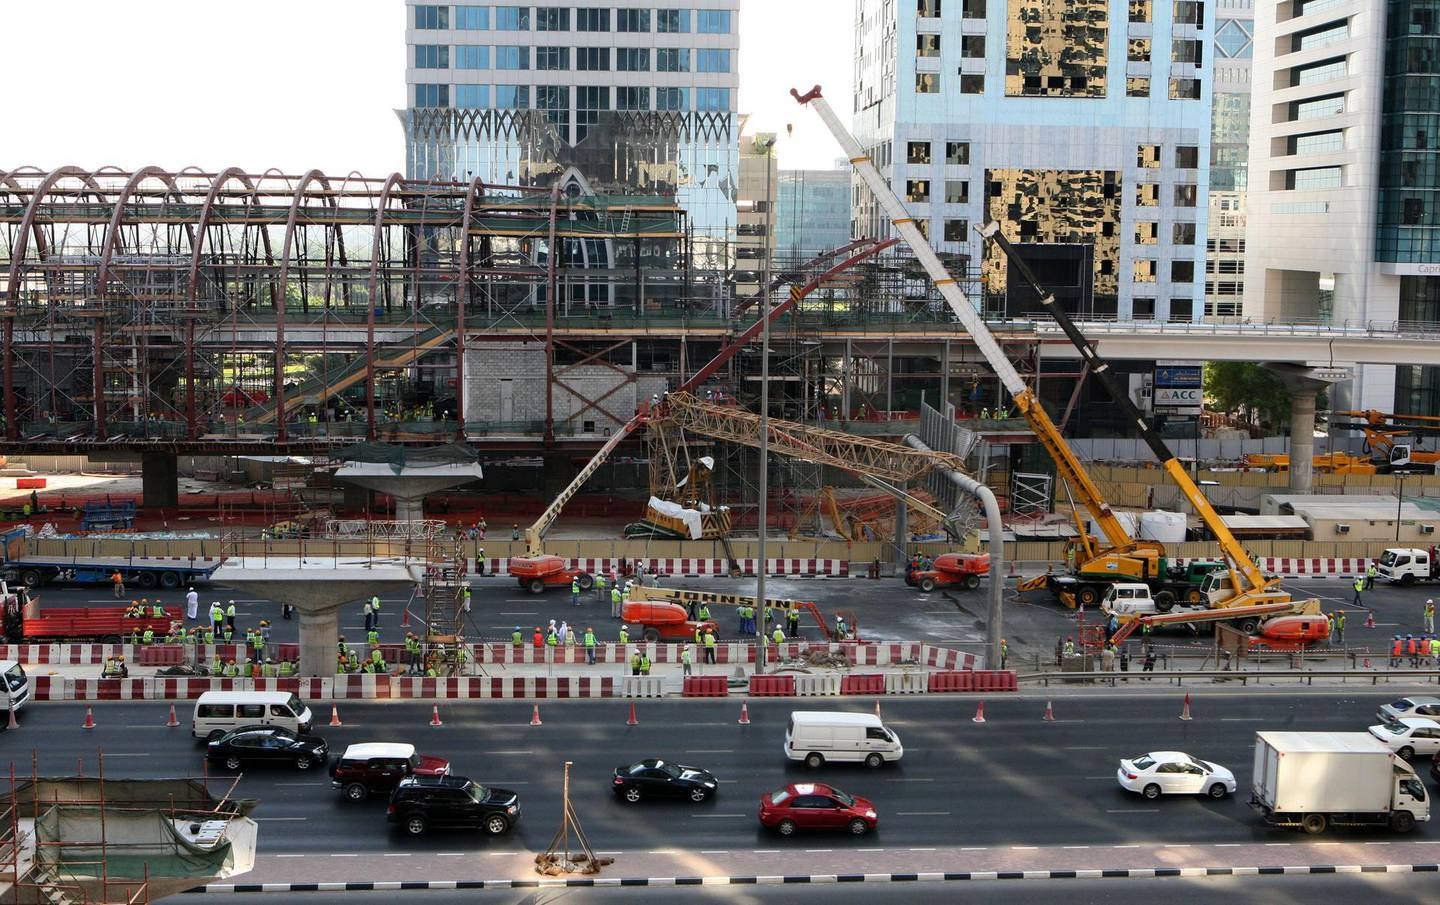 DUBAI-NOVEMBER 9,2008 - A mobile crane working on the Dubai Metro track near Emirates Tower fell onto scafolding causing parts of Sheikh Zaye Road to be closed and leading to huge amount of traffic. ( Paulo Vecina/the National ) *** Local Caption ***  PV Crane 13.JPGPV Crane 13.JPG